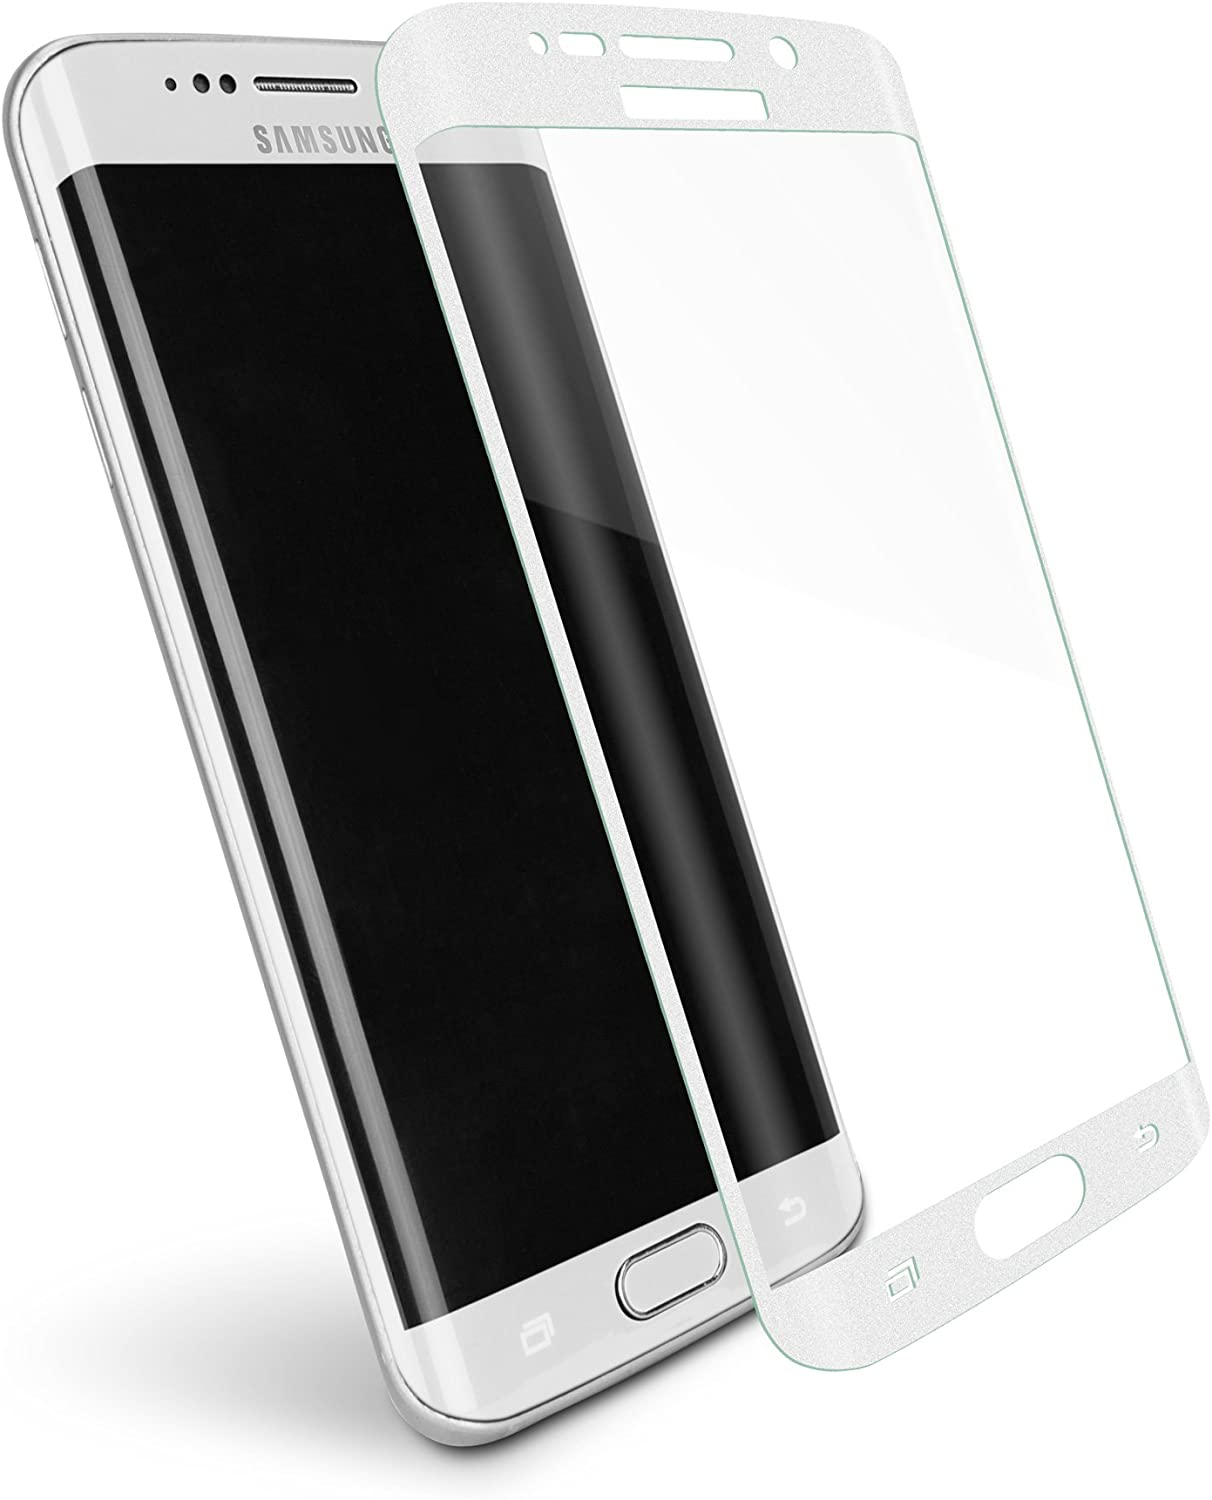 White Tempered Glass Screen Protector for Samsung Galaxy S6 Edge+ with Tool Kit